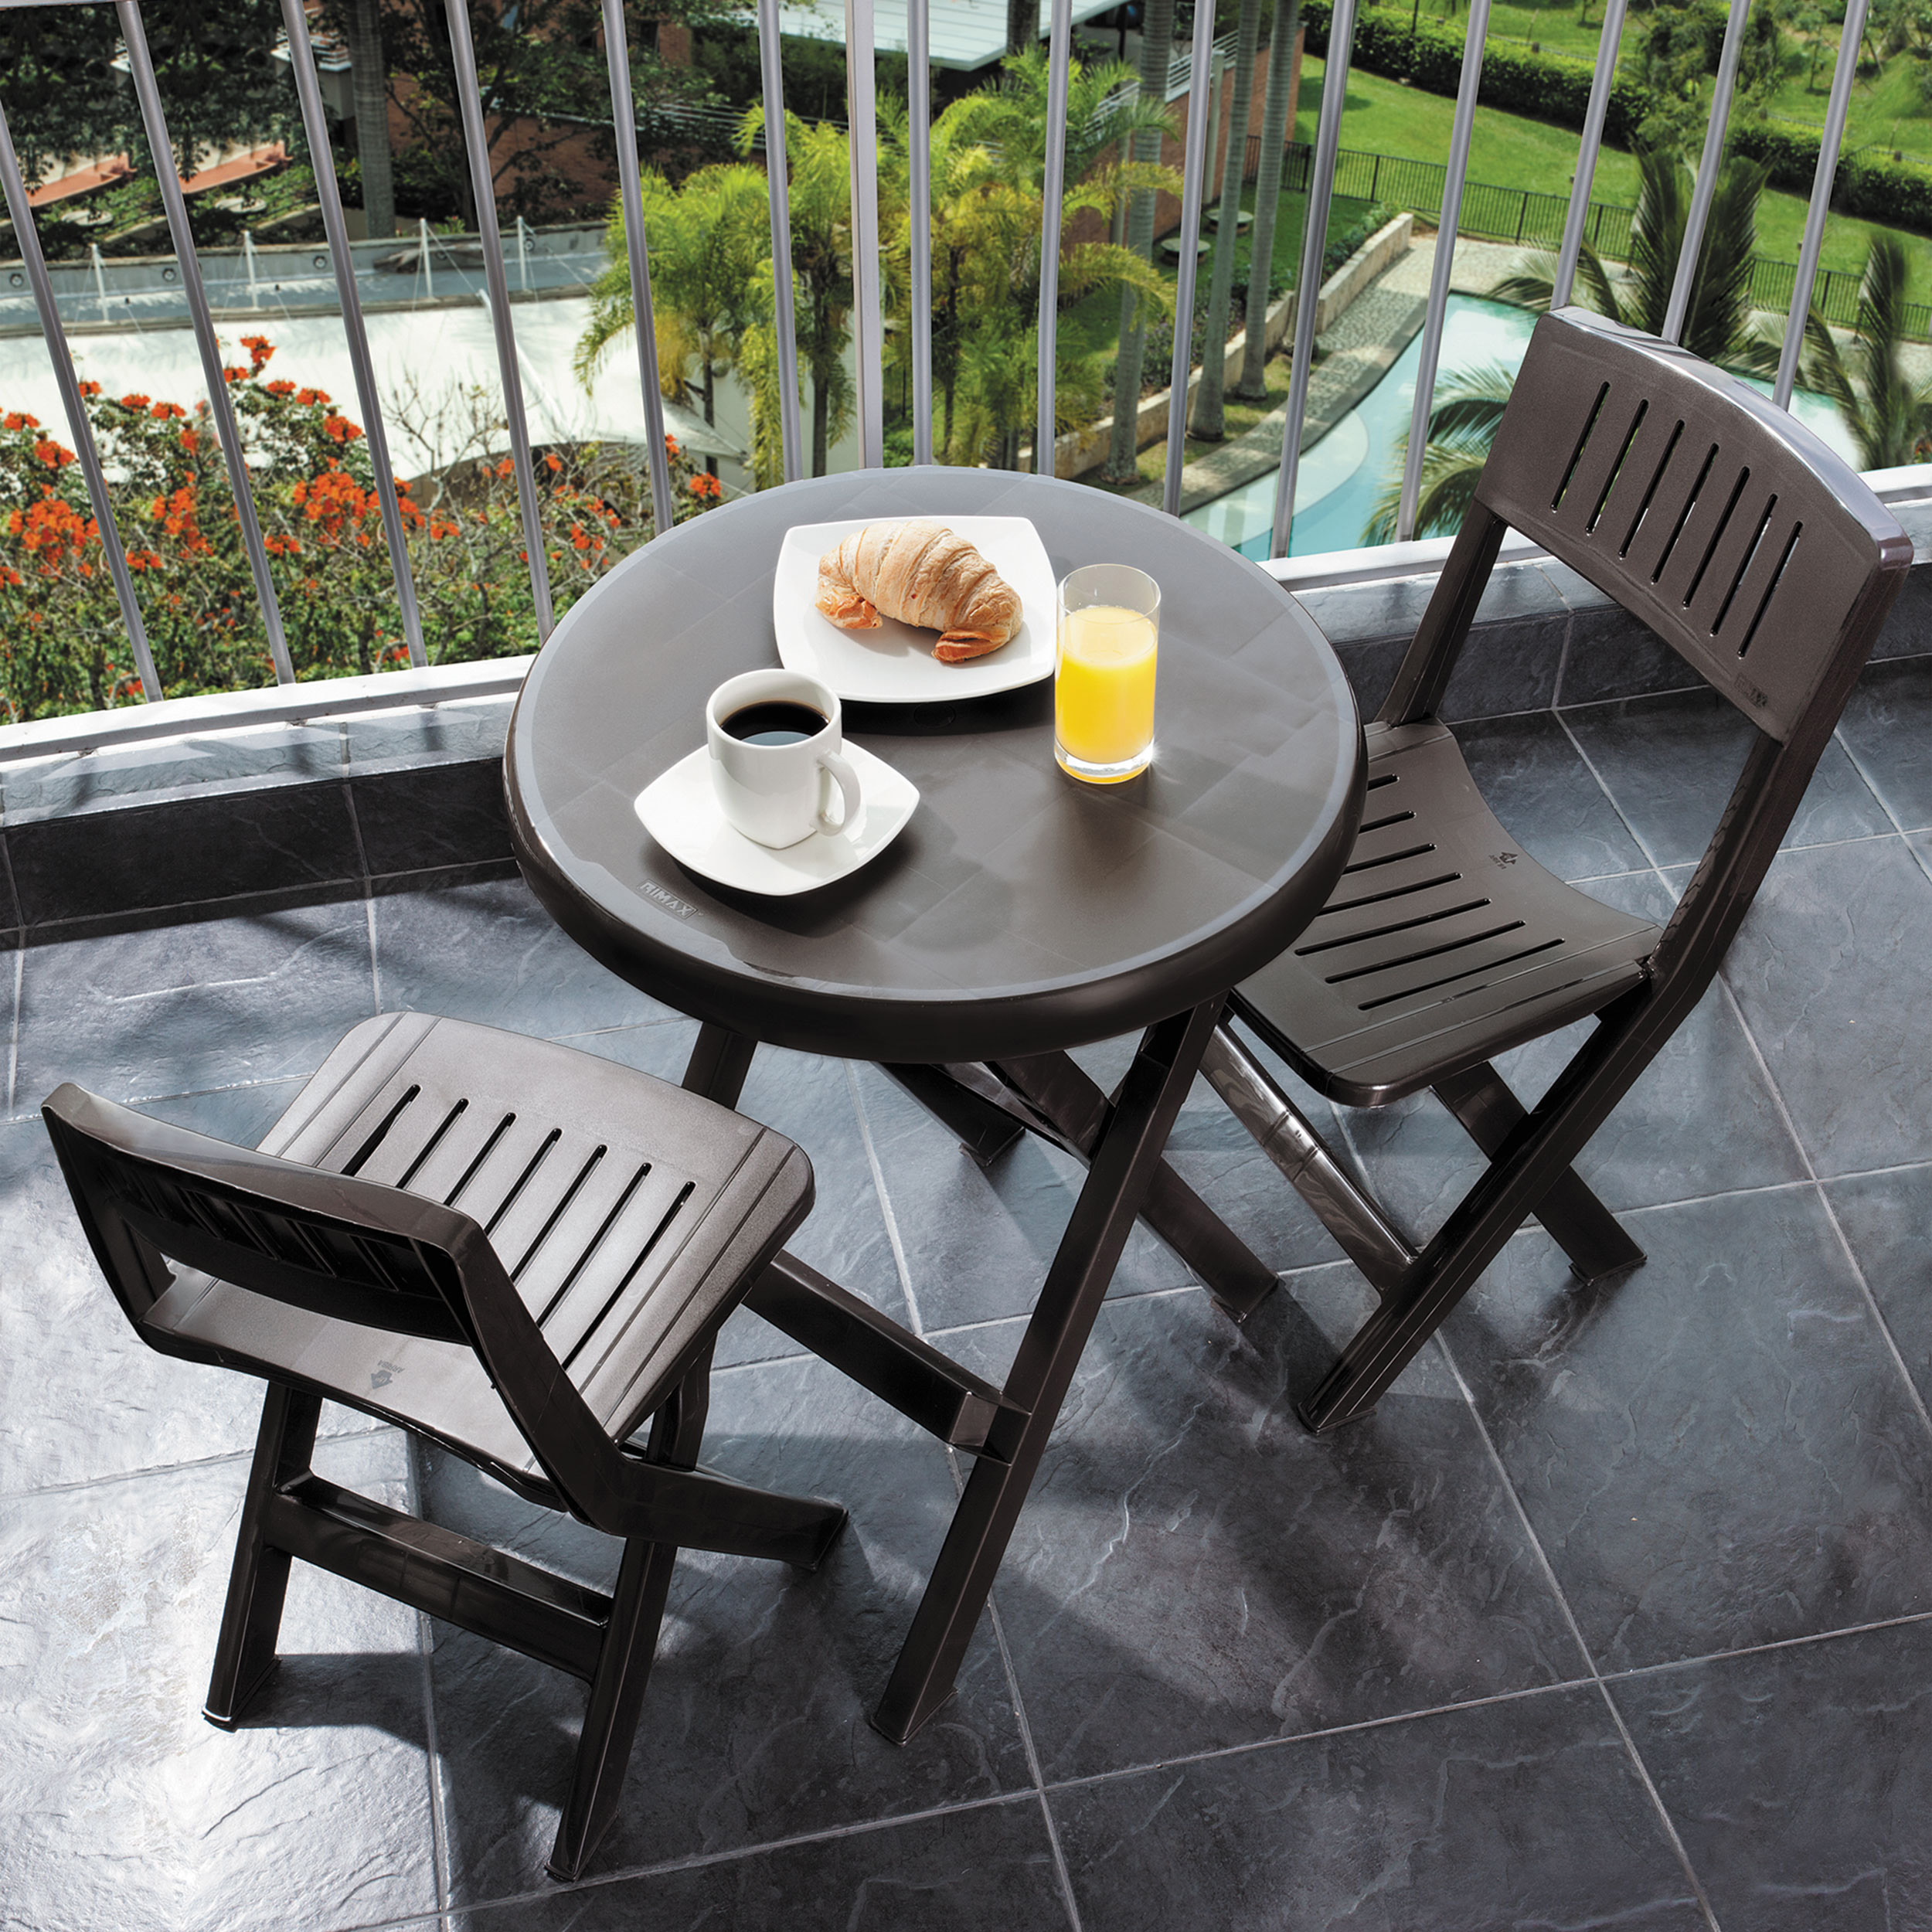 Details About Casual Brown Folding Bistro Set Portable Patio Deck Furniture Outdoor